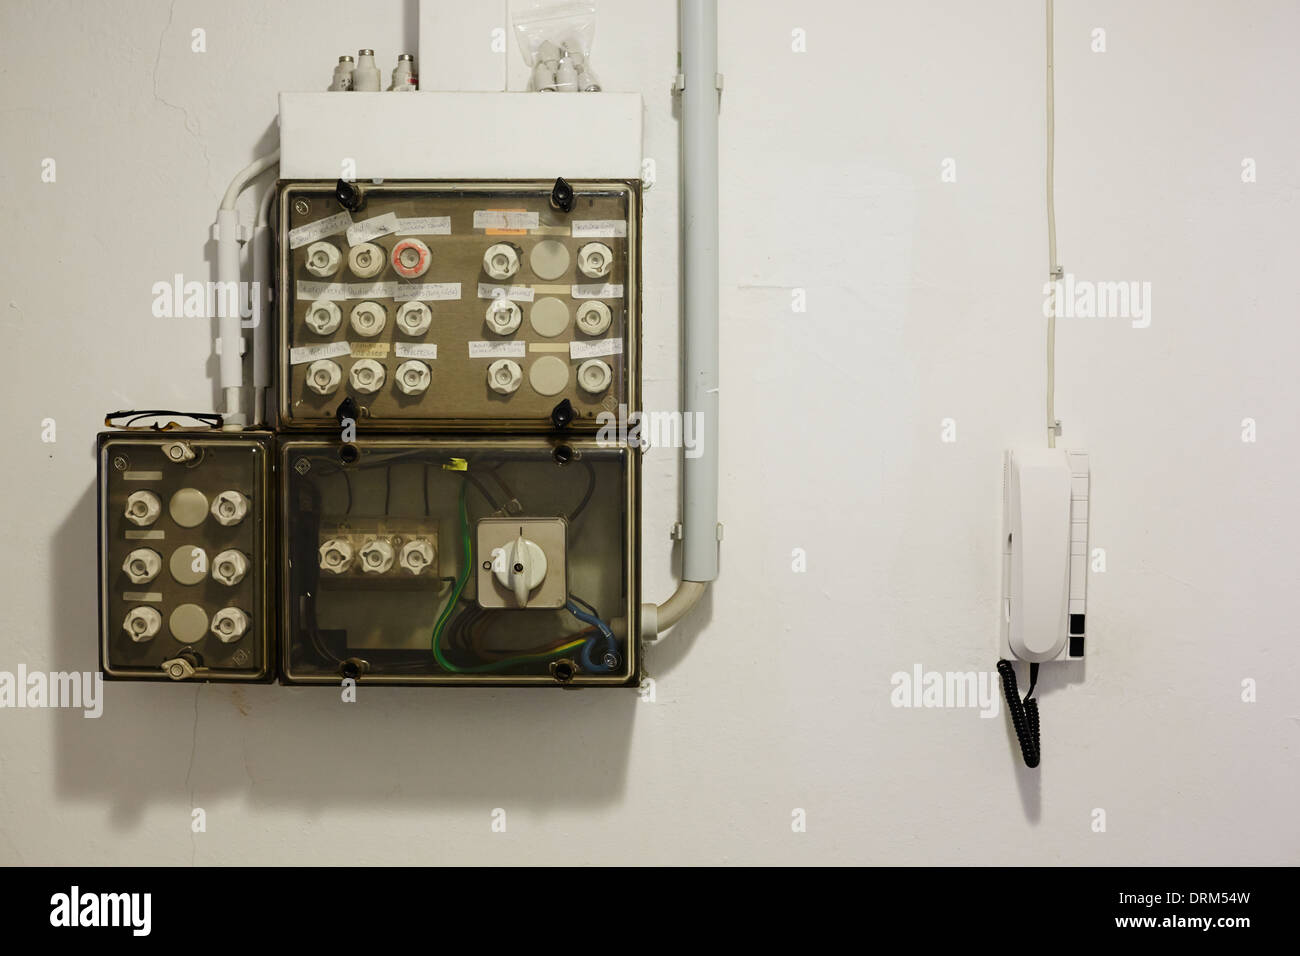 hight resolution of old fuse box stock image